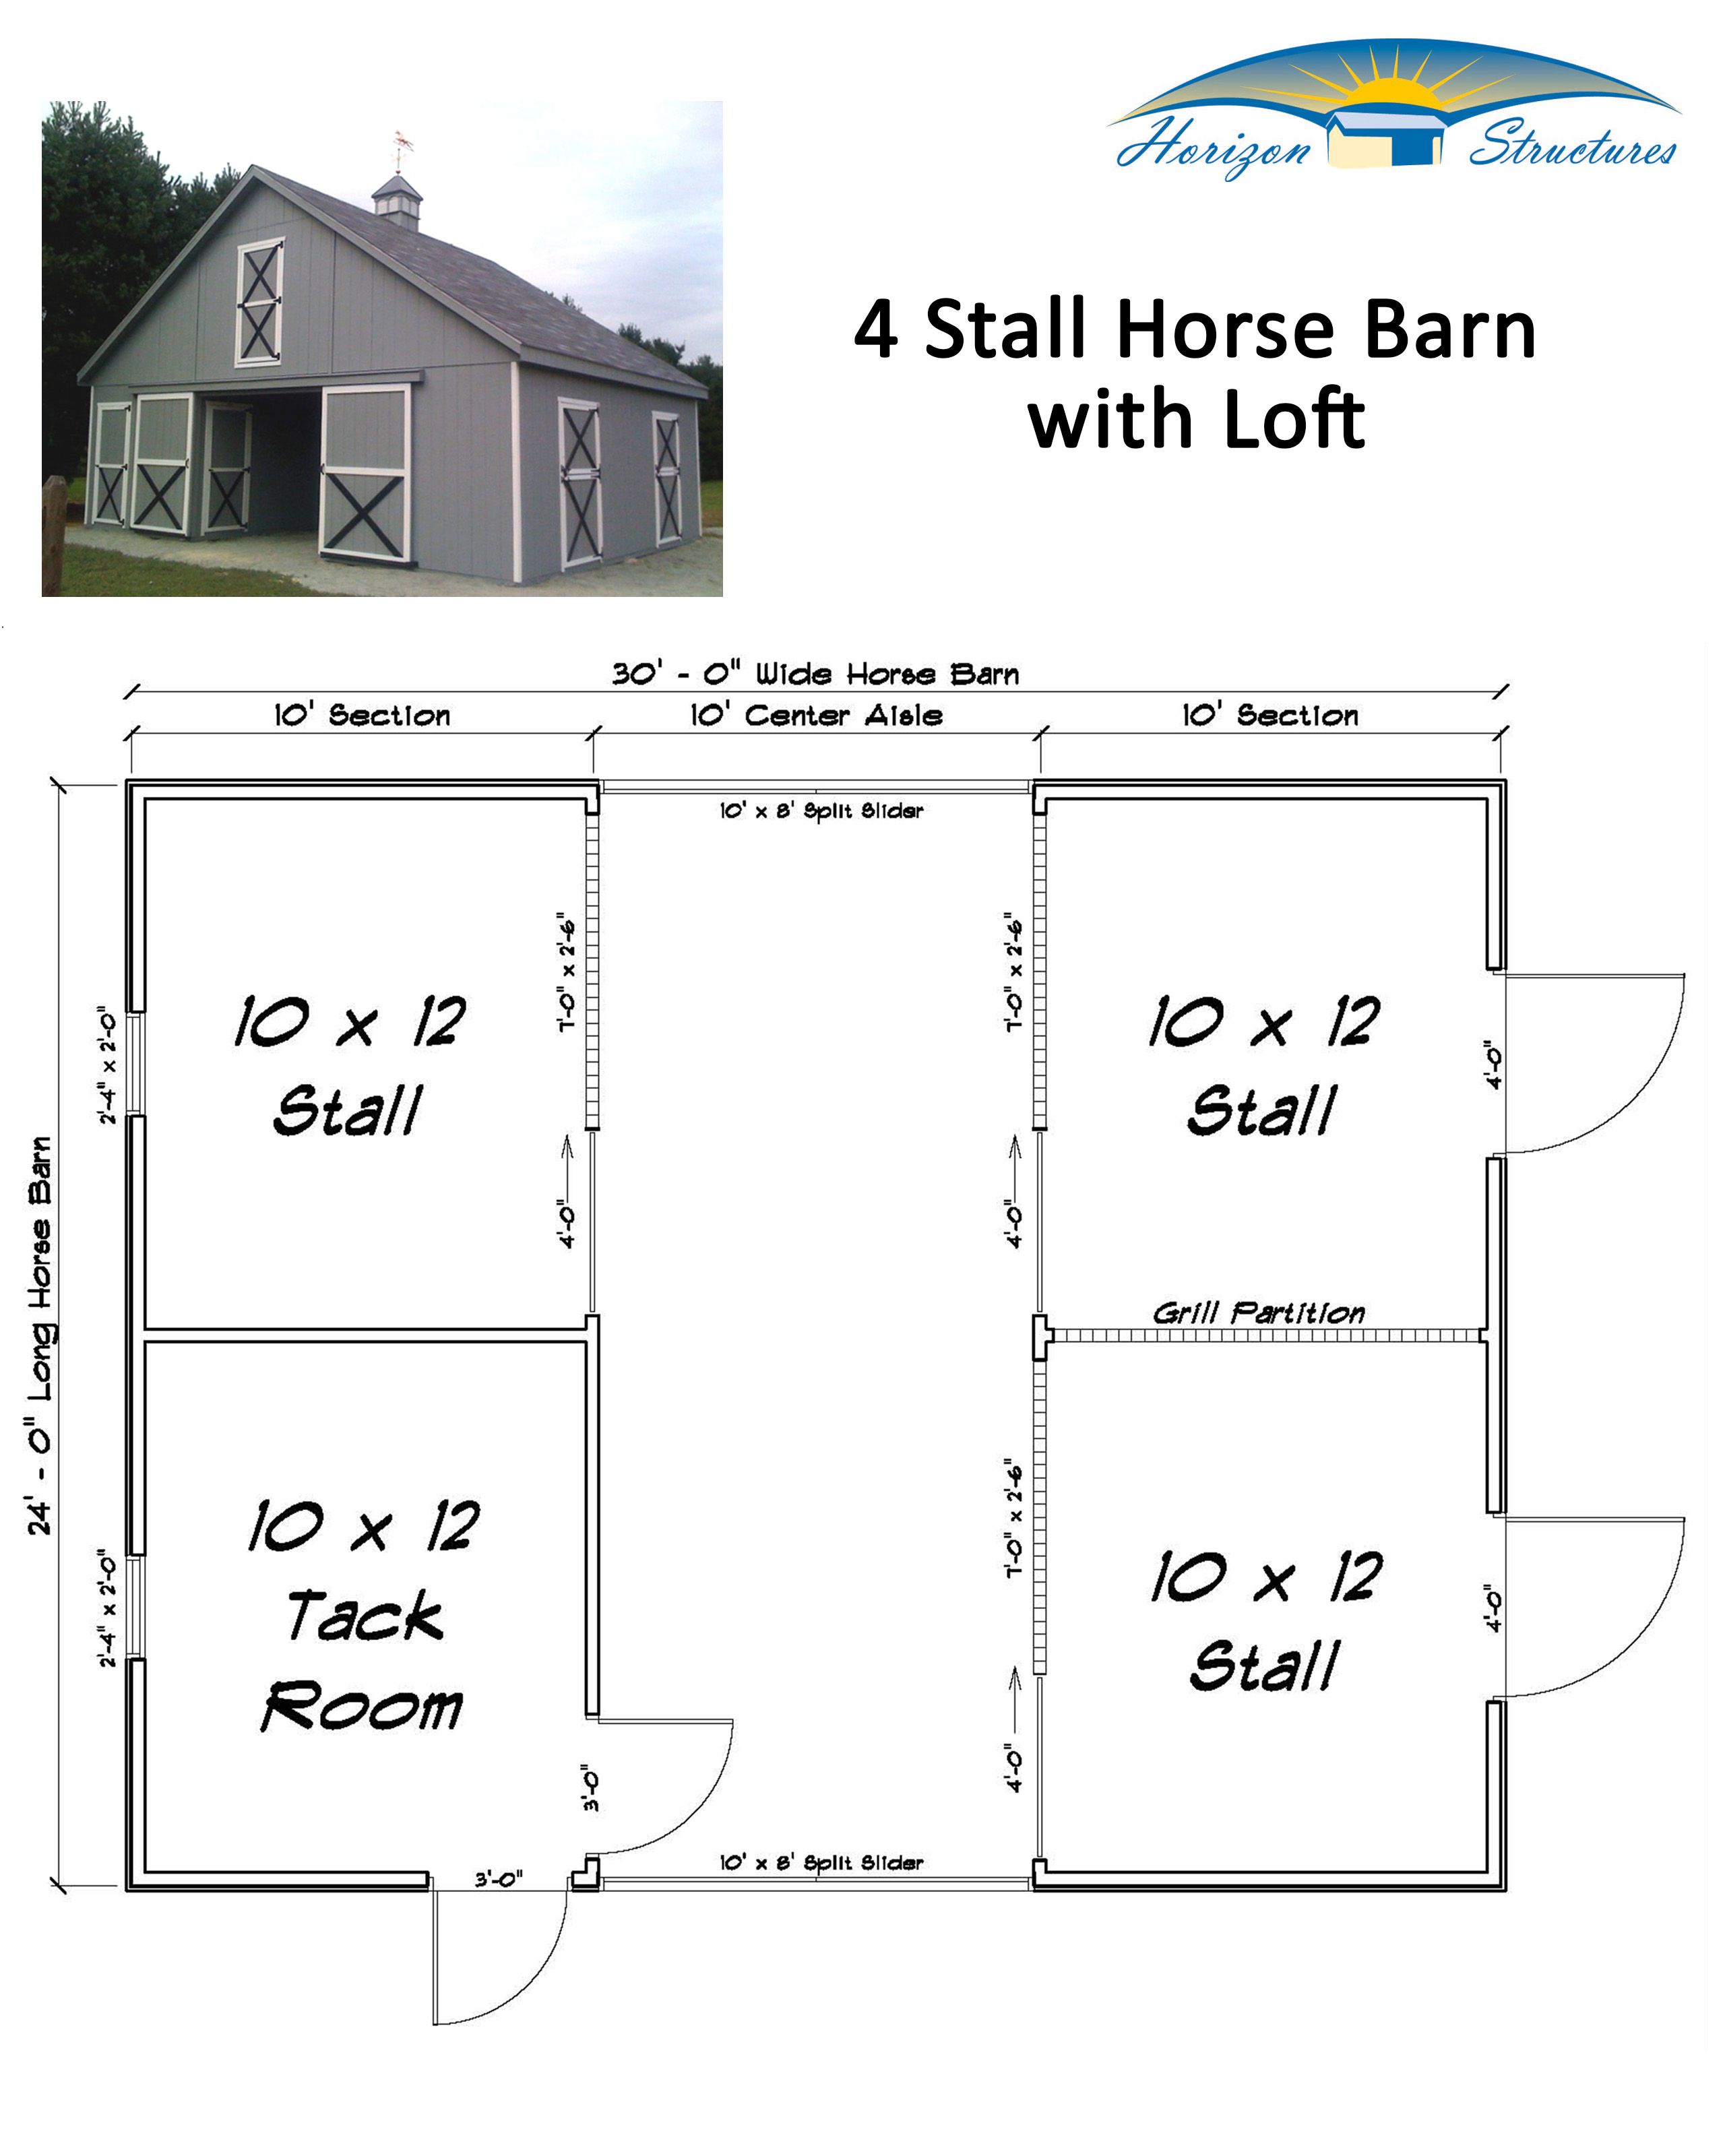 3 stall horse barn with tack feed room and loft this for Horse barn plans free